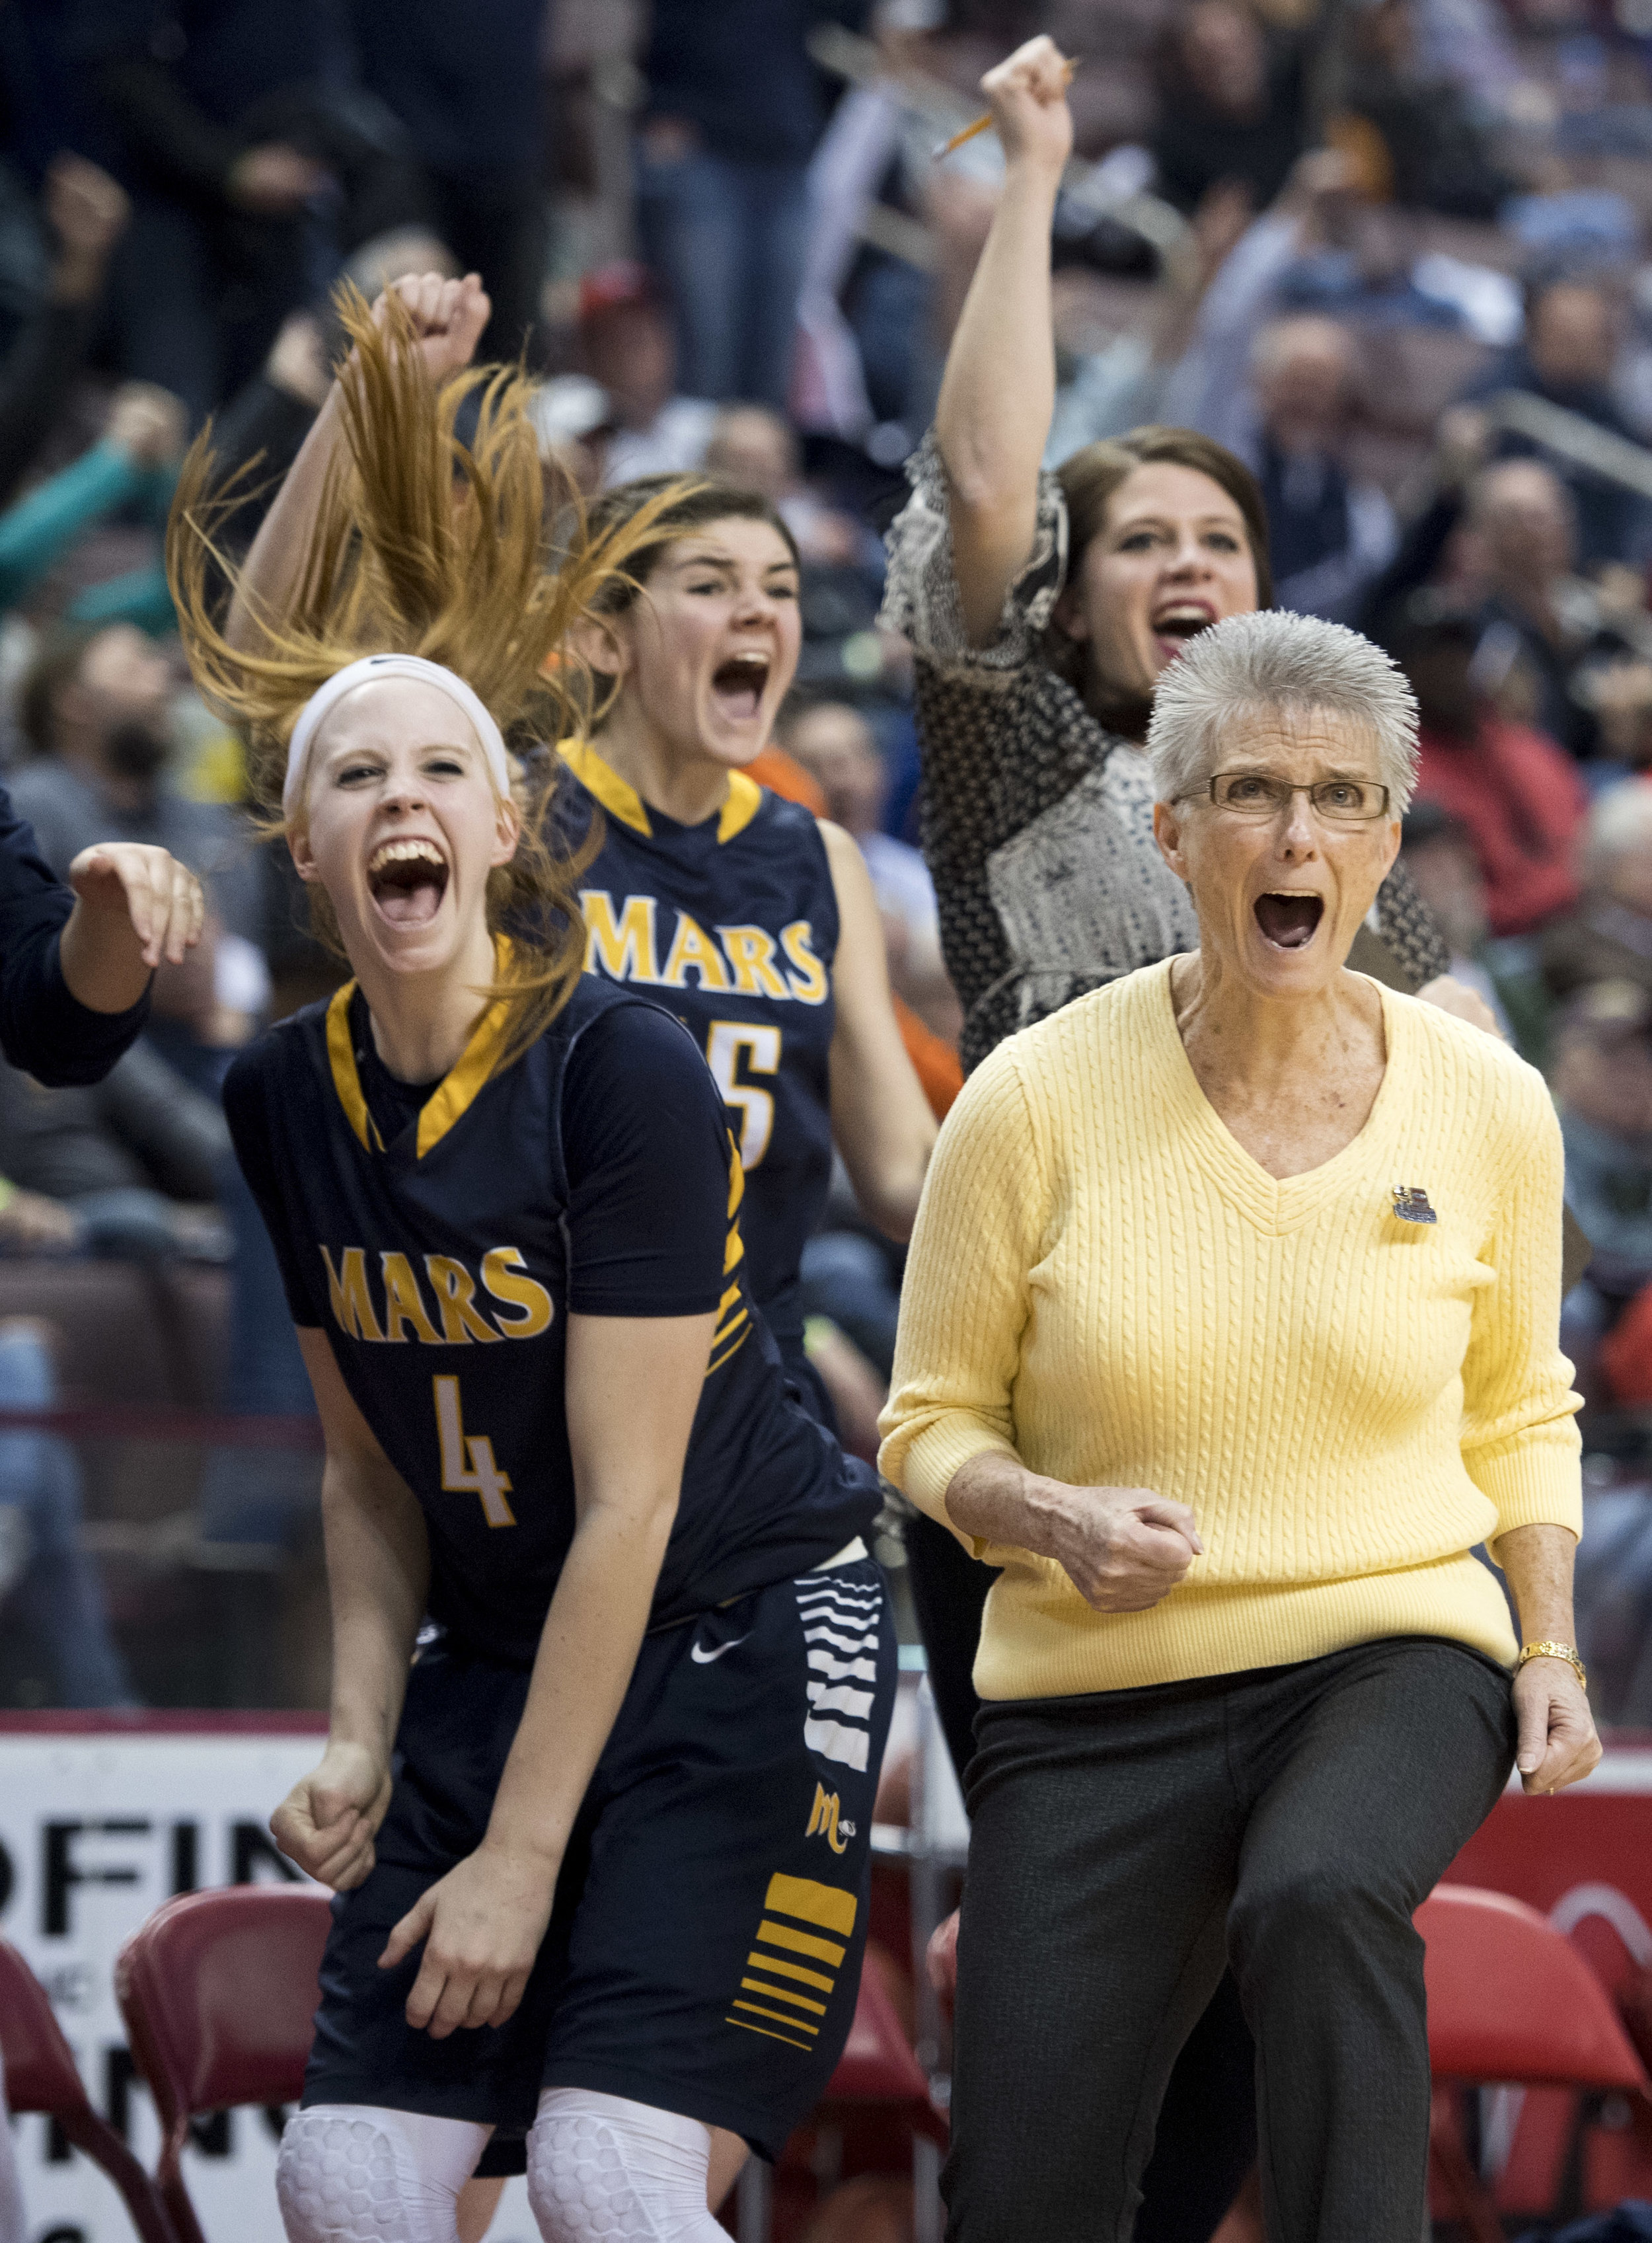 Mars head coach Dana Petruska reacts after Tai Johnson made her shot on a foul during the PIAA class 5A girls basketball championship on Wednesday, March 28, 2018, at the Giant Center in Hershey. Mars beat Archbishop Wood, 36-33. (Steph Chambers/Post-Gazette)